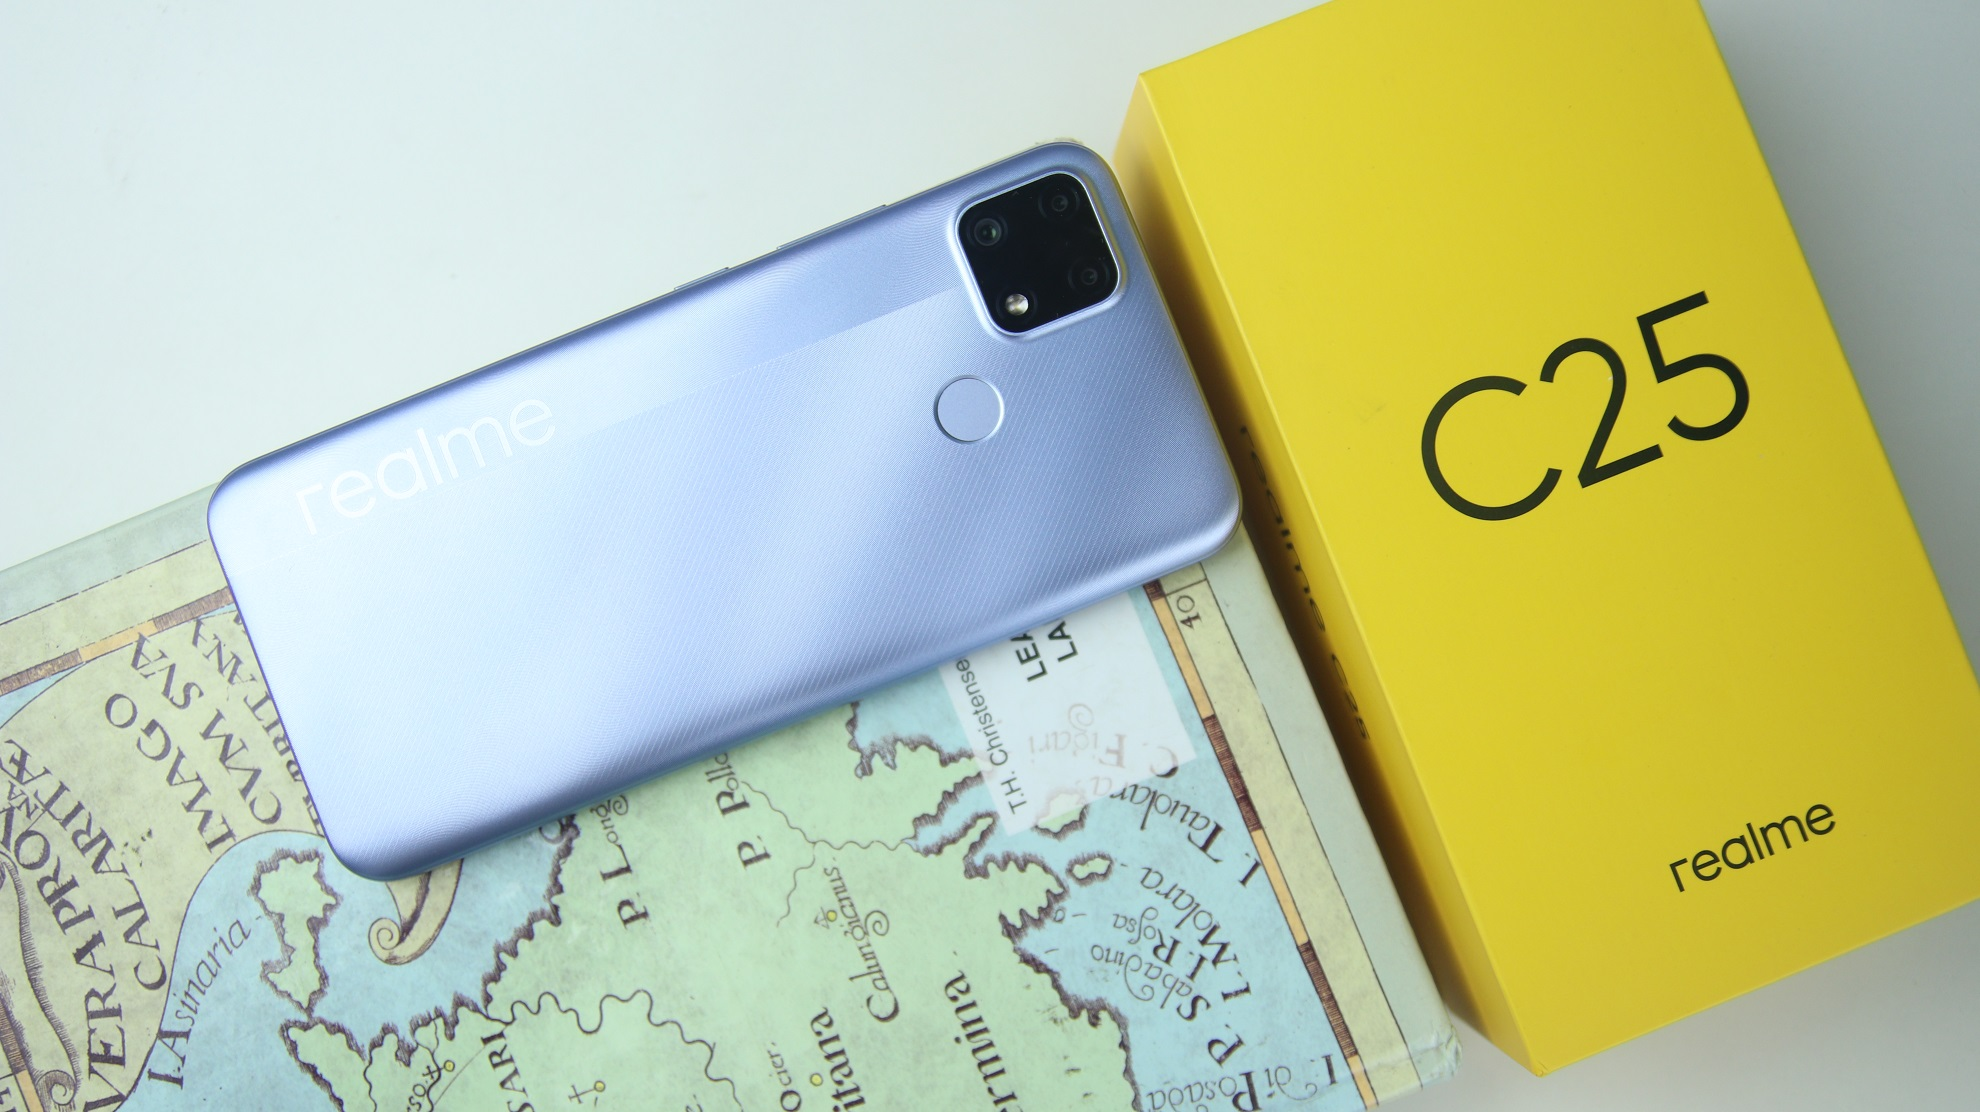 realme-c25-official-price-specs-release-date-availability-philippines